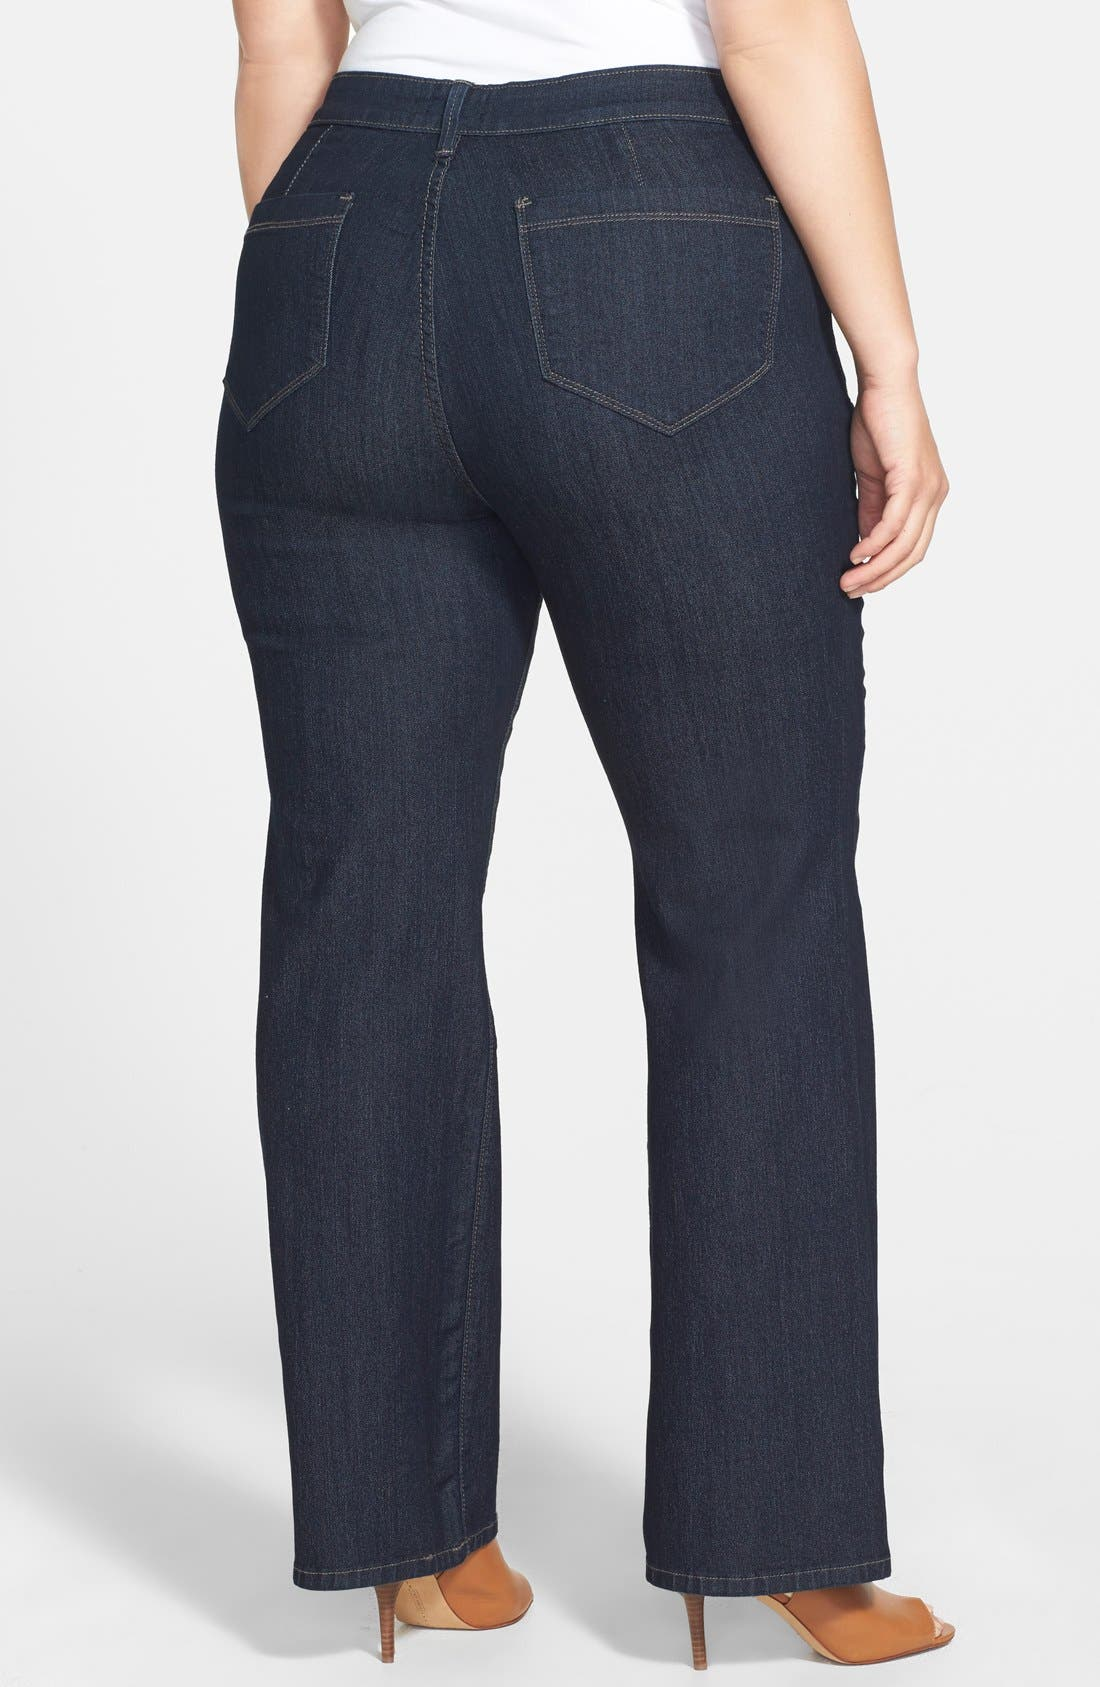 'Isabella' Stretch Trouser Jeans,                             Alternate thumbnail 2, color,                             Dark Enzyme